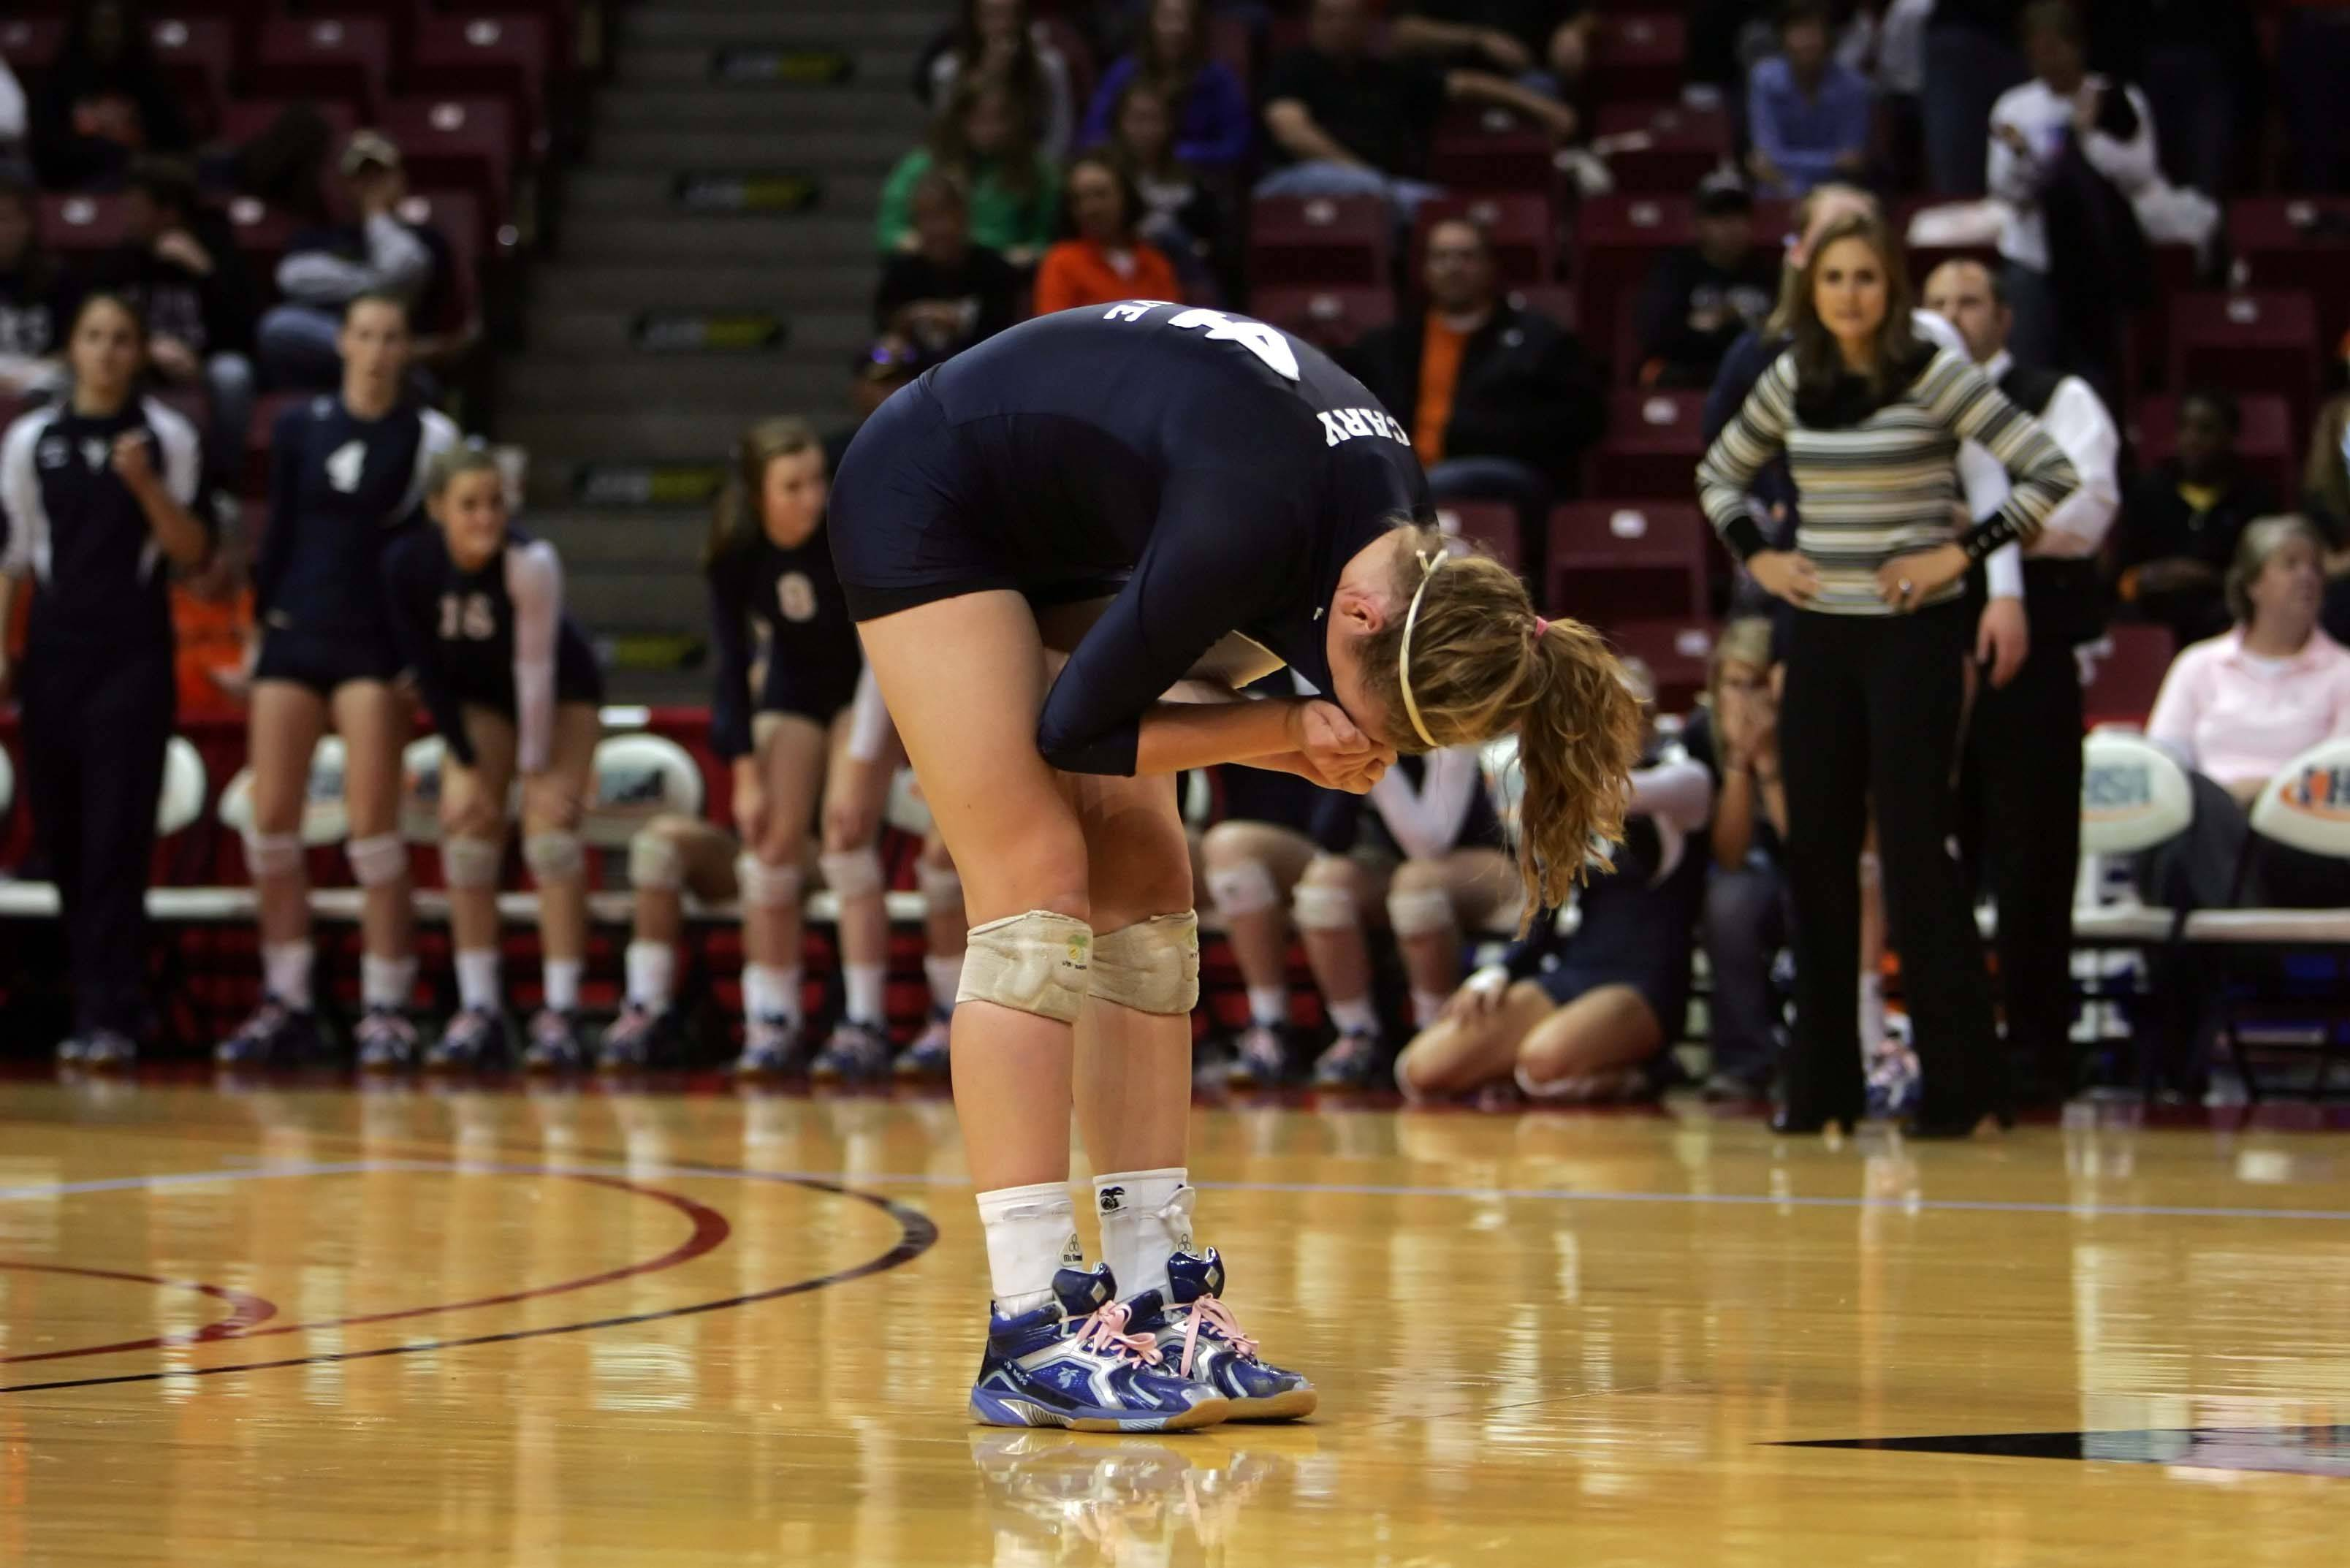 Cary-Grove middle blocker Suzy Dorsey, 4, reacts after their loss to Lyons in the IHSA Class 4A State championship match Saturday, November 13, 2010 at Redbird Arena in Normal. The Trojans lost the match in three games and finished second.